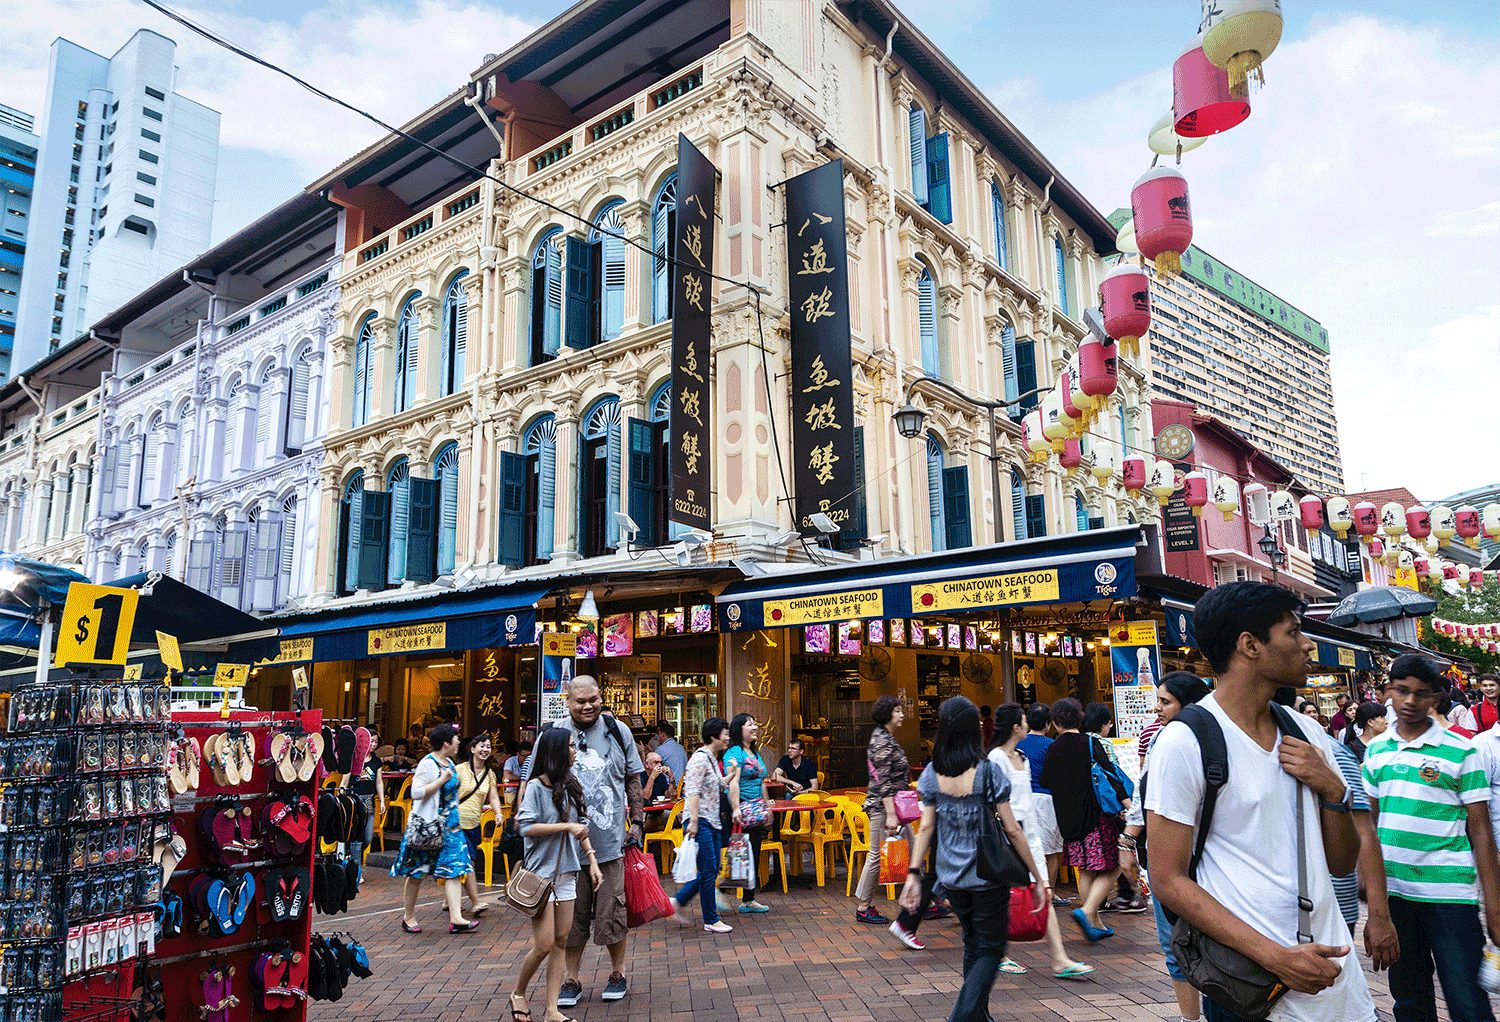 melting-pot-of-culture-reasons-visit-singapore-2019